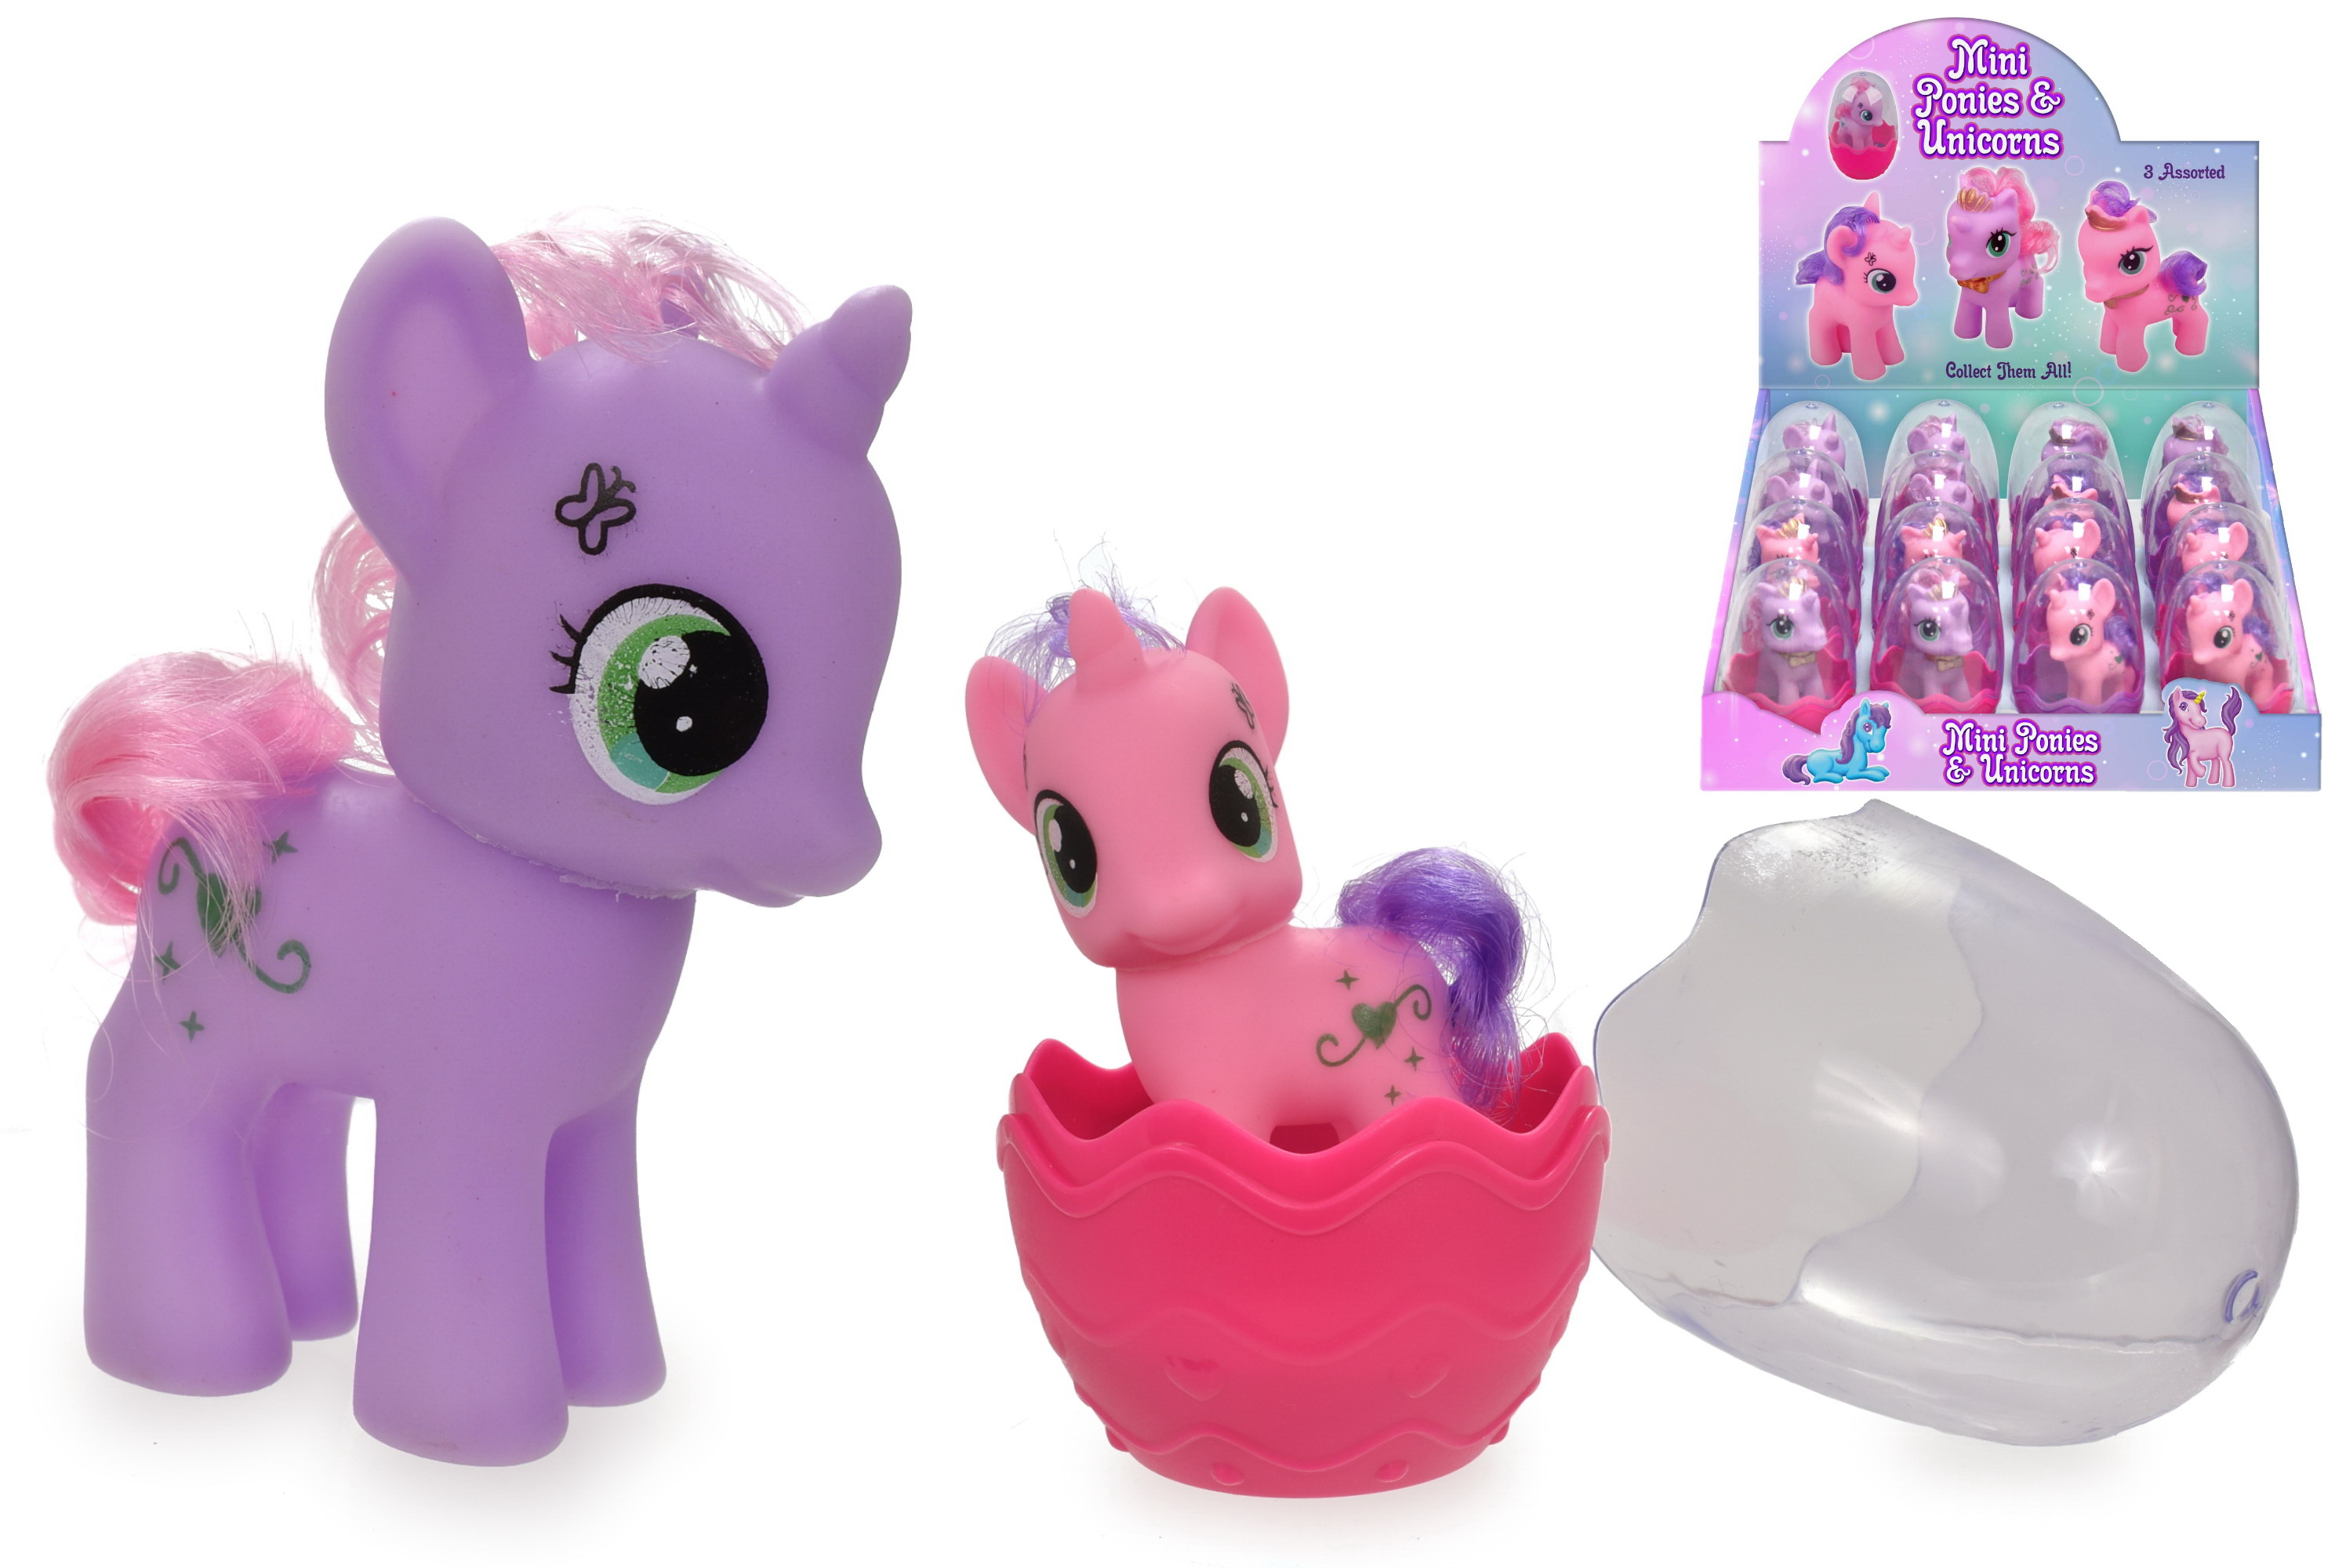 "Mini Ponies & Unicorns - 3 Assorted ""Its Girls Stuff"""